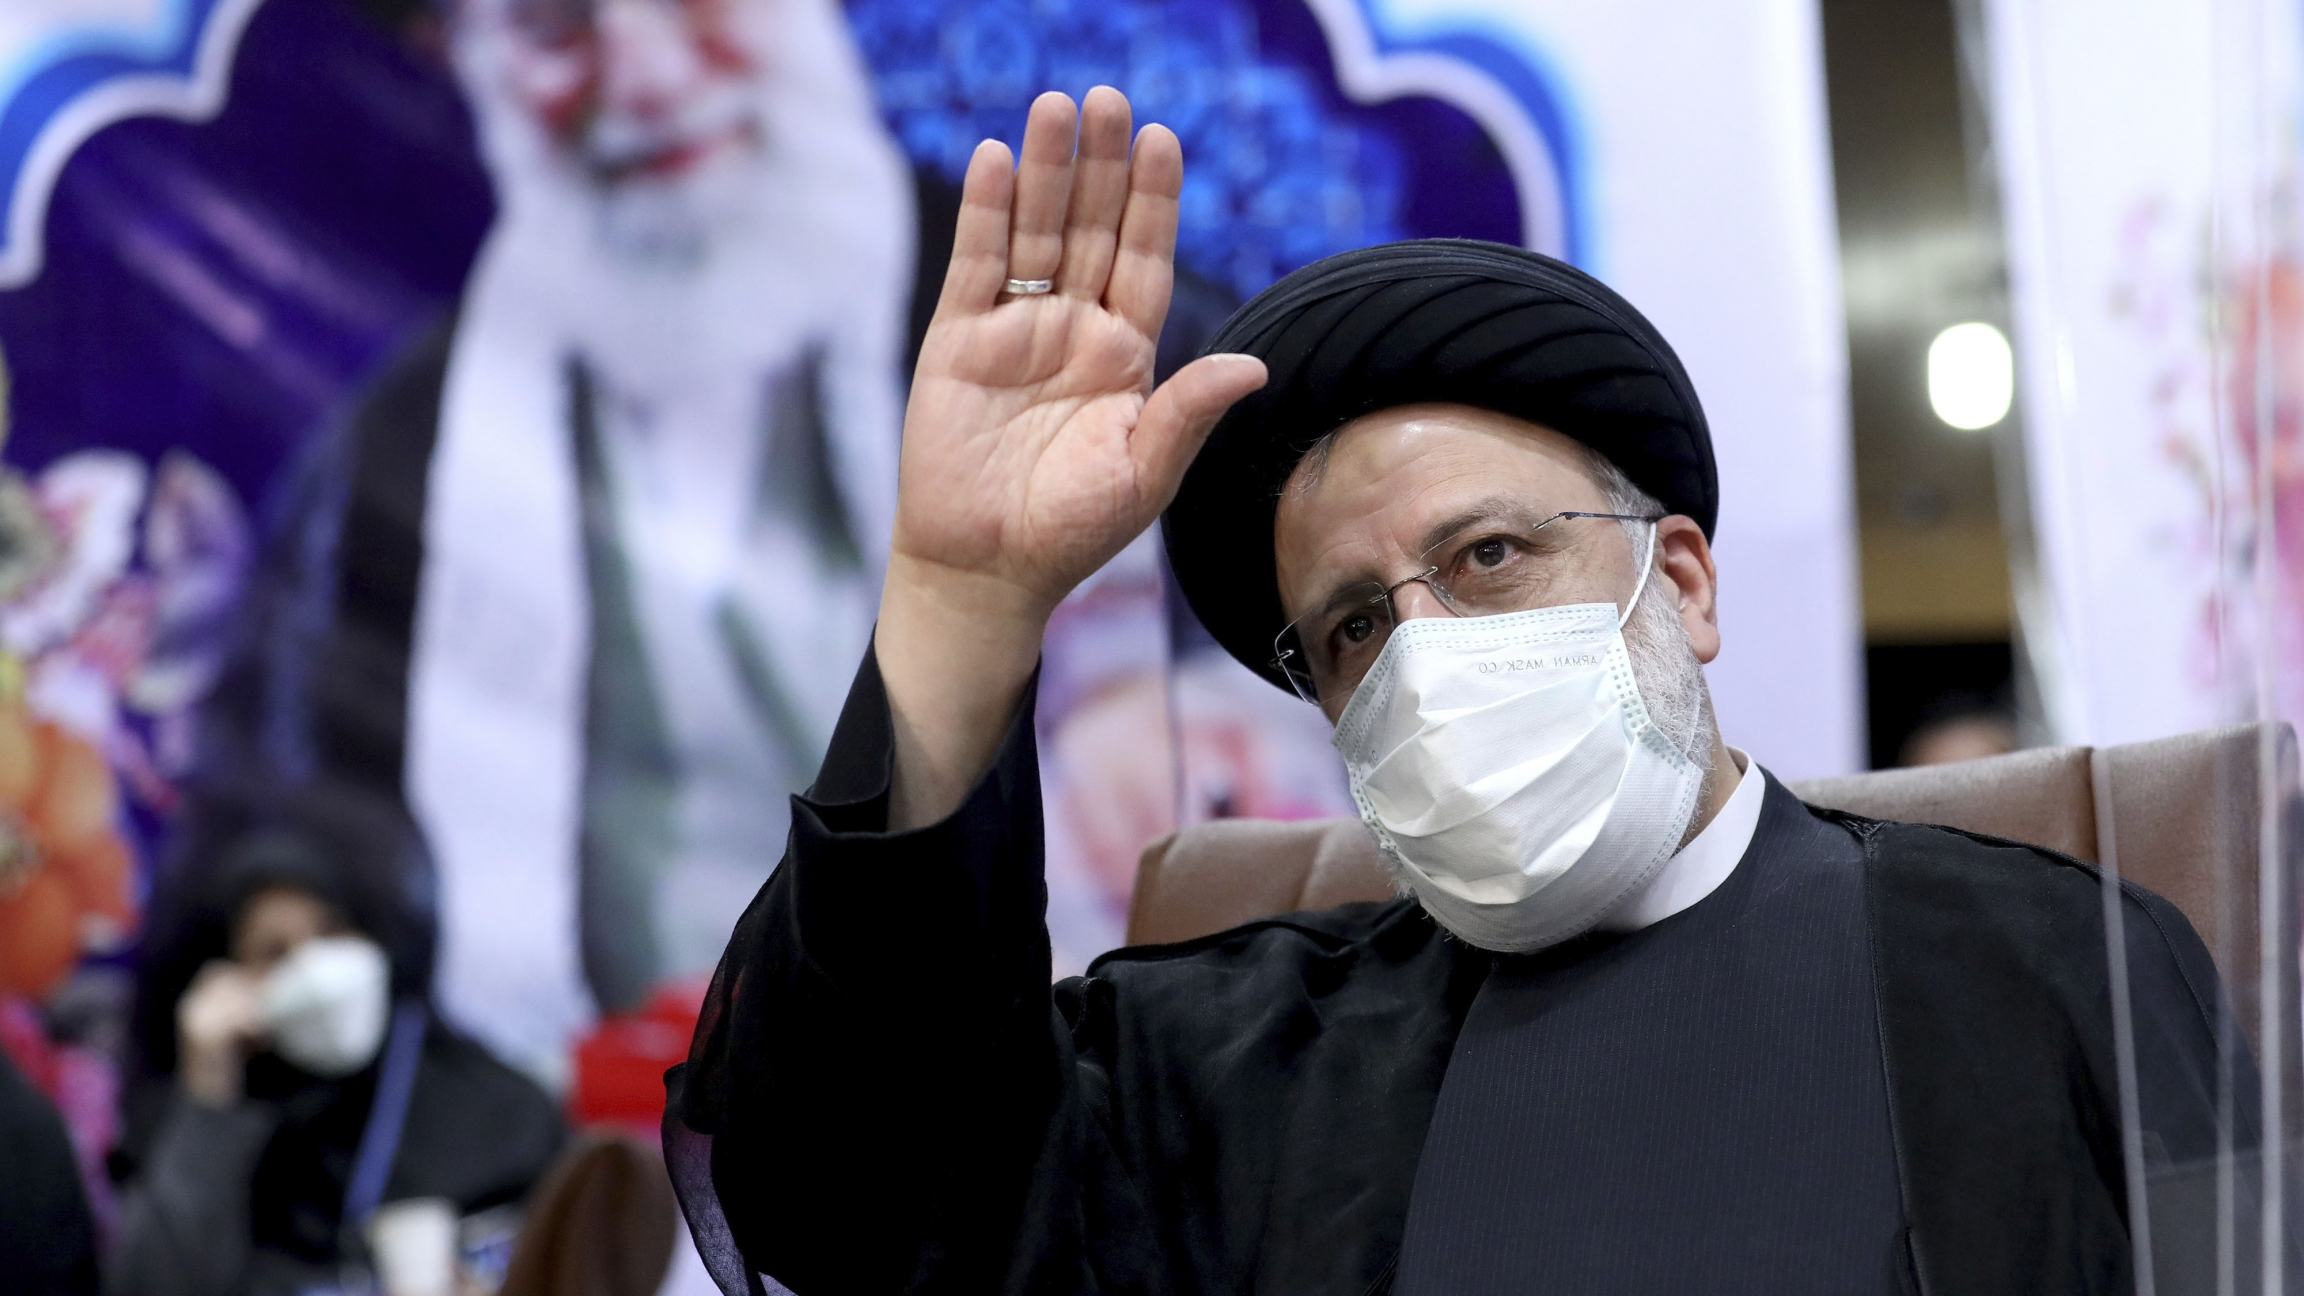 Iranian man in black robe and turban waves in front of a picture of Supreme Leader Ali Khamenei